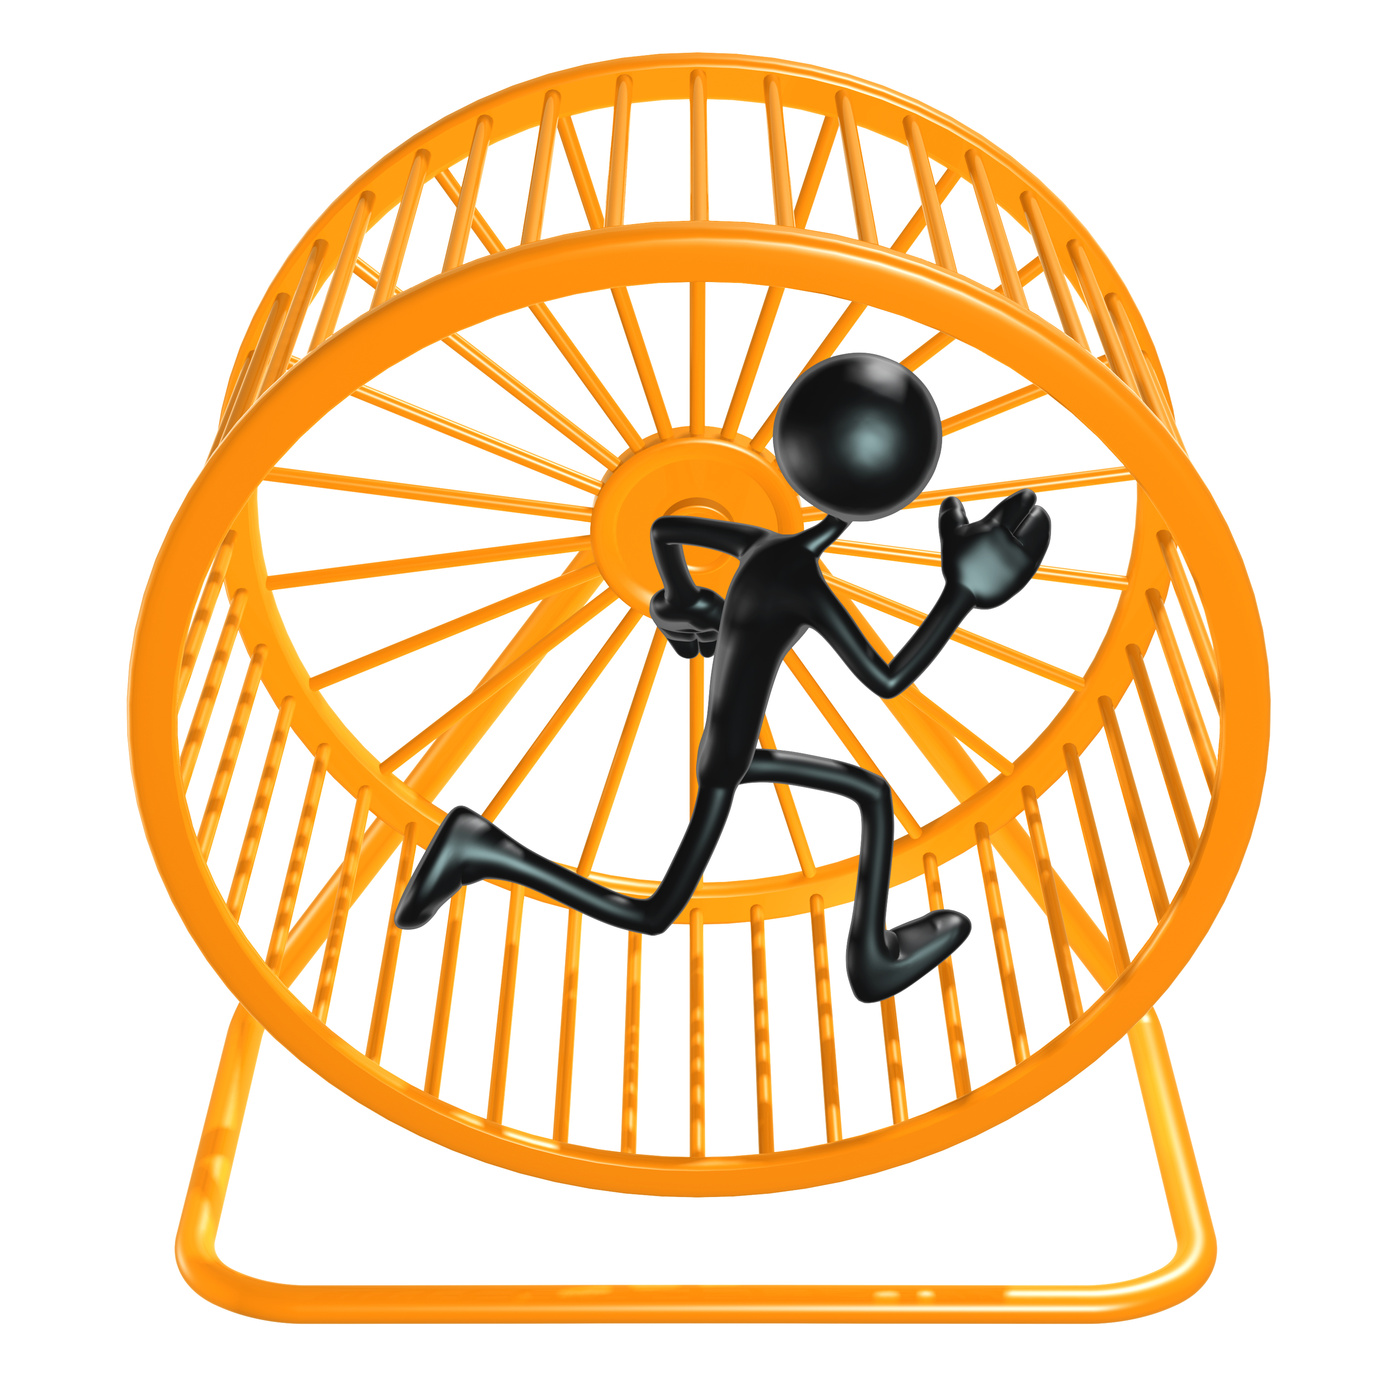 image black and white stock Free cliparts download clip. Hamster wheel clipart